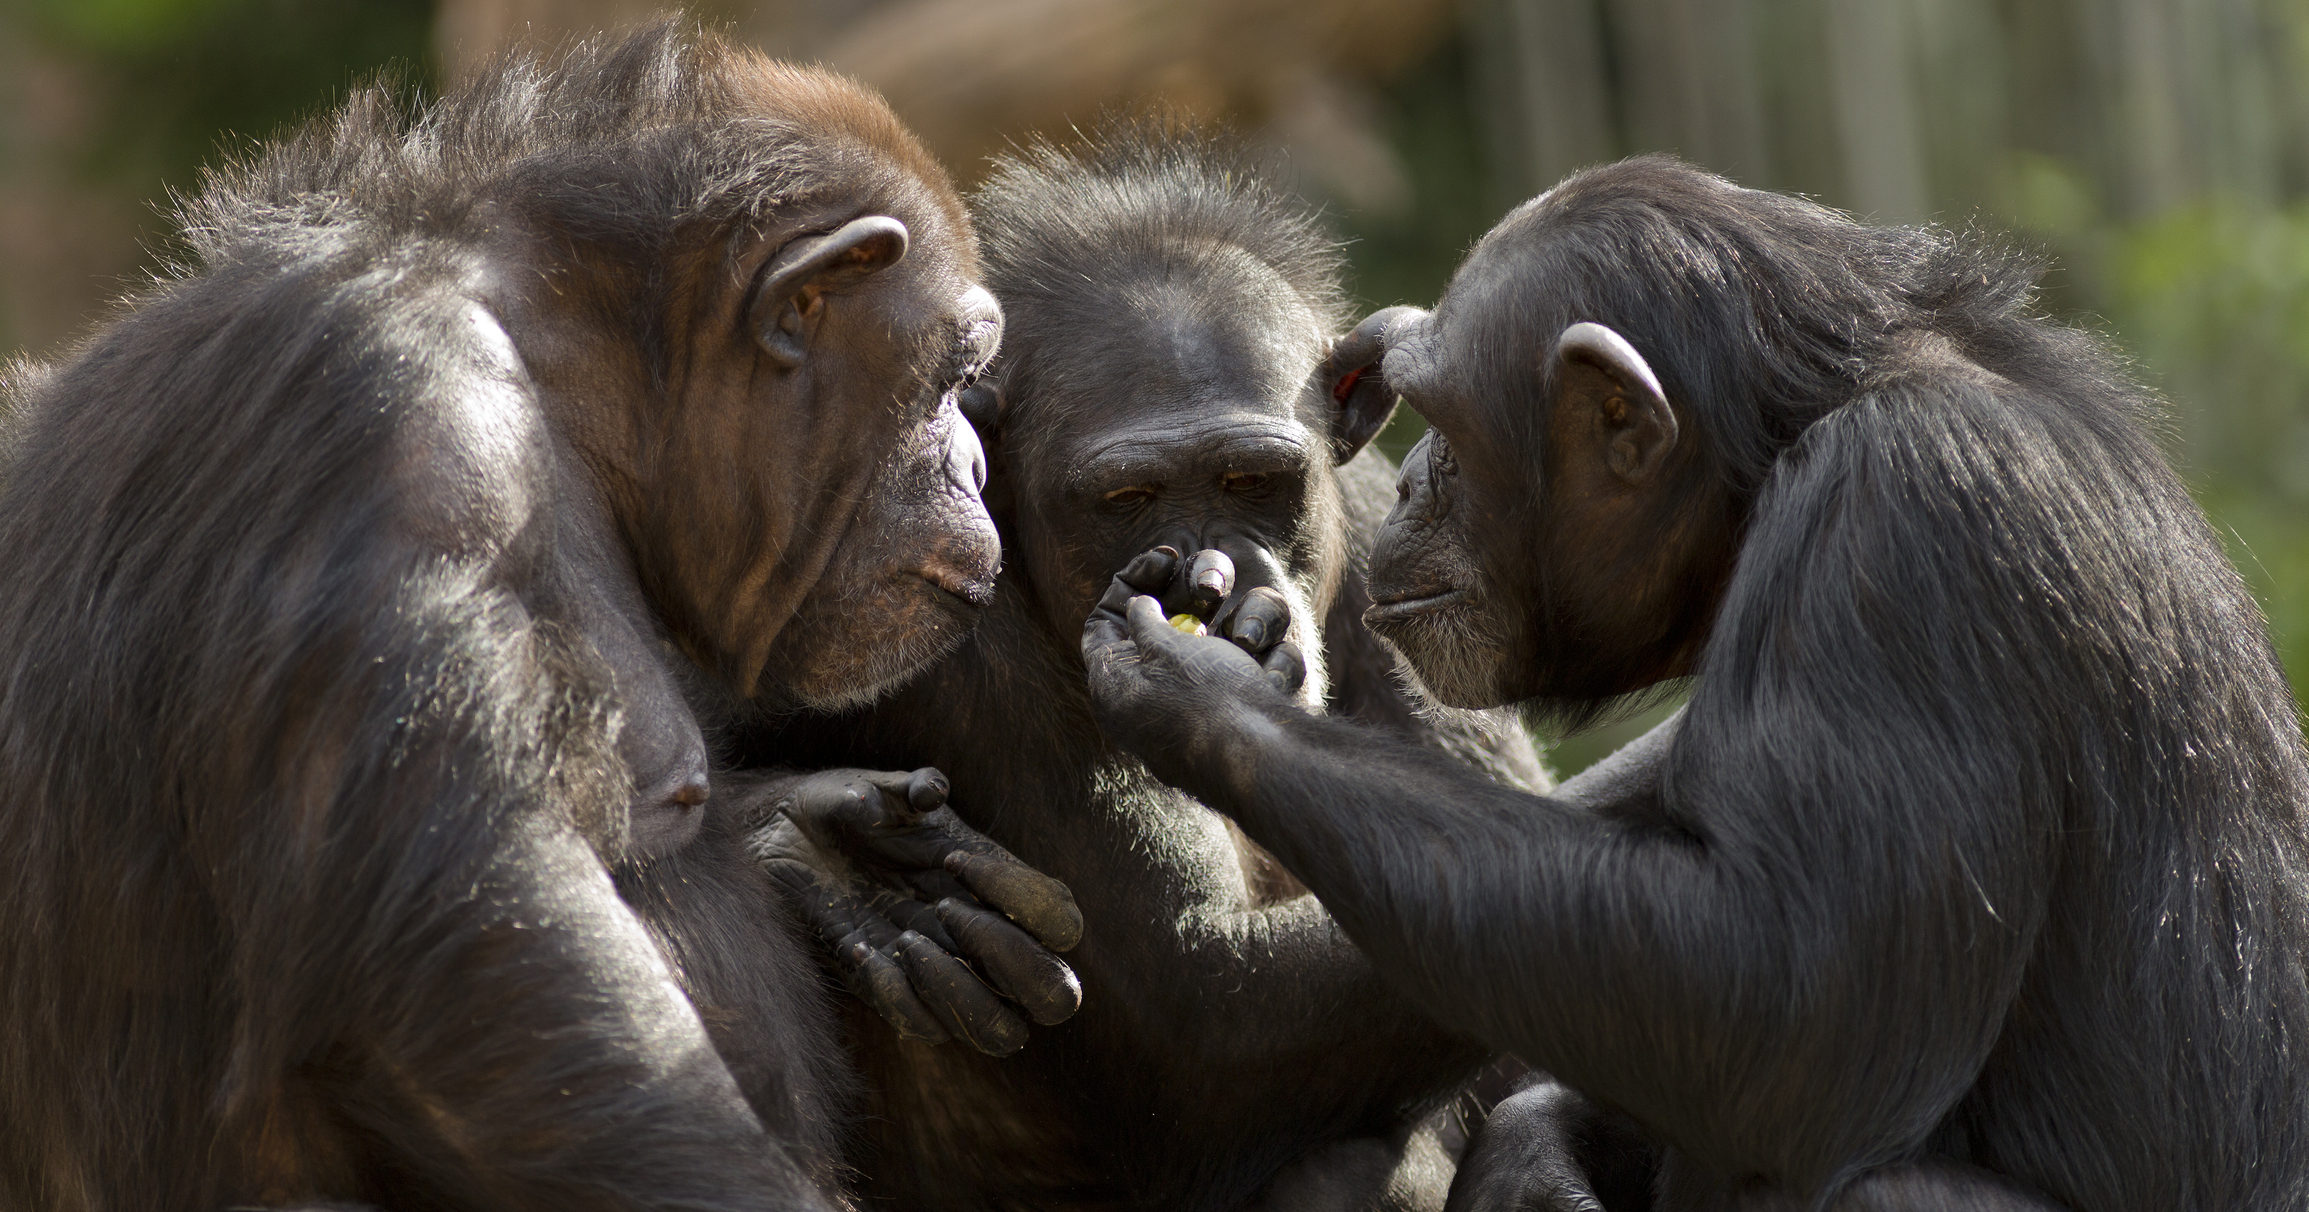 Wasted Potential: Researchers Have Announced That Apes Could Probably Talk If They Gave It Any Effort At All